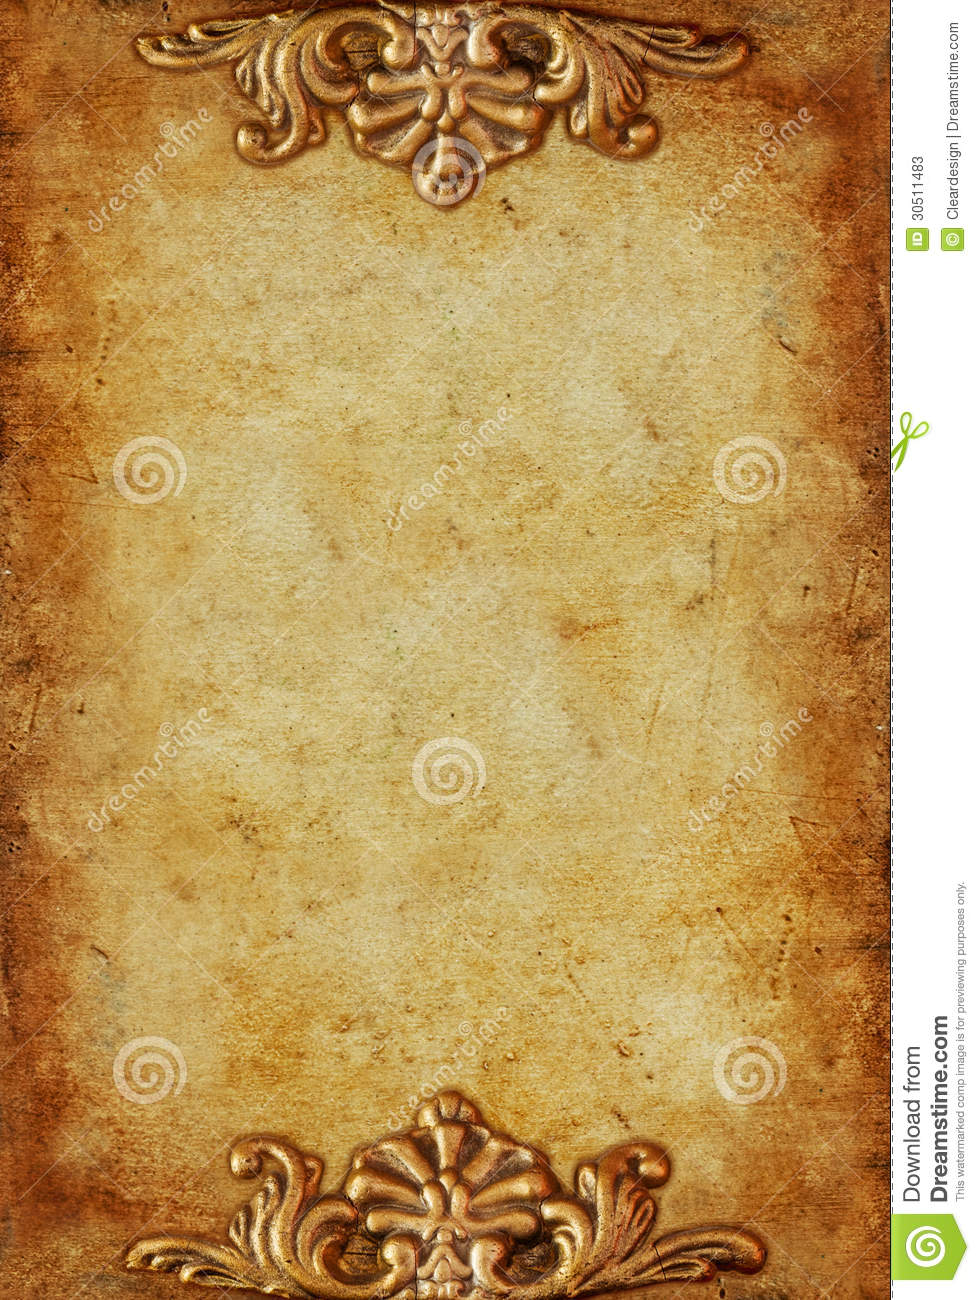 vintage royal gold background with floral ornaments stock